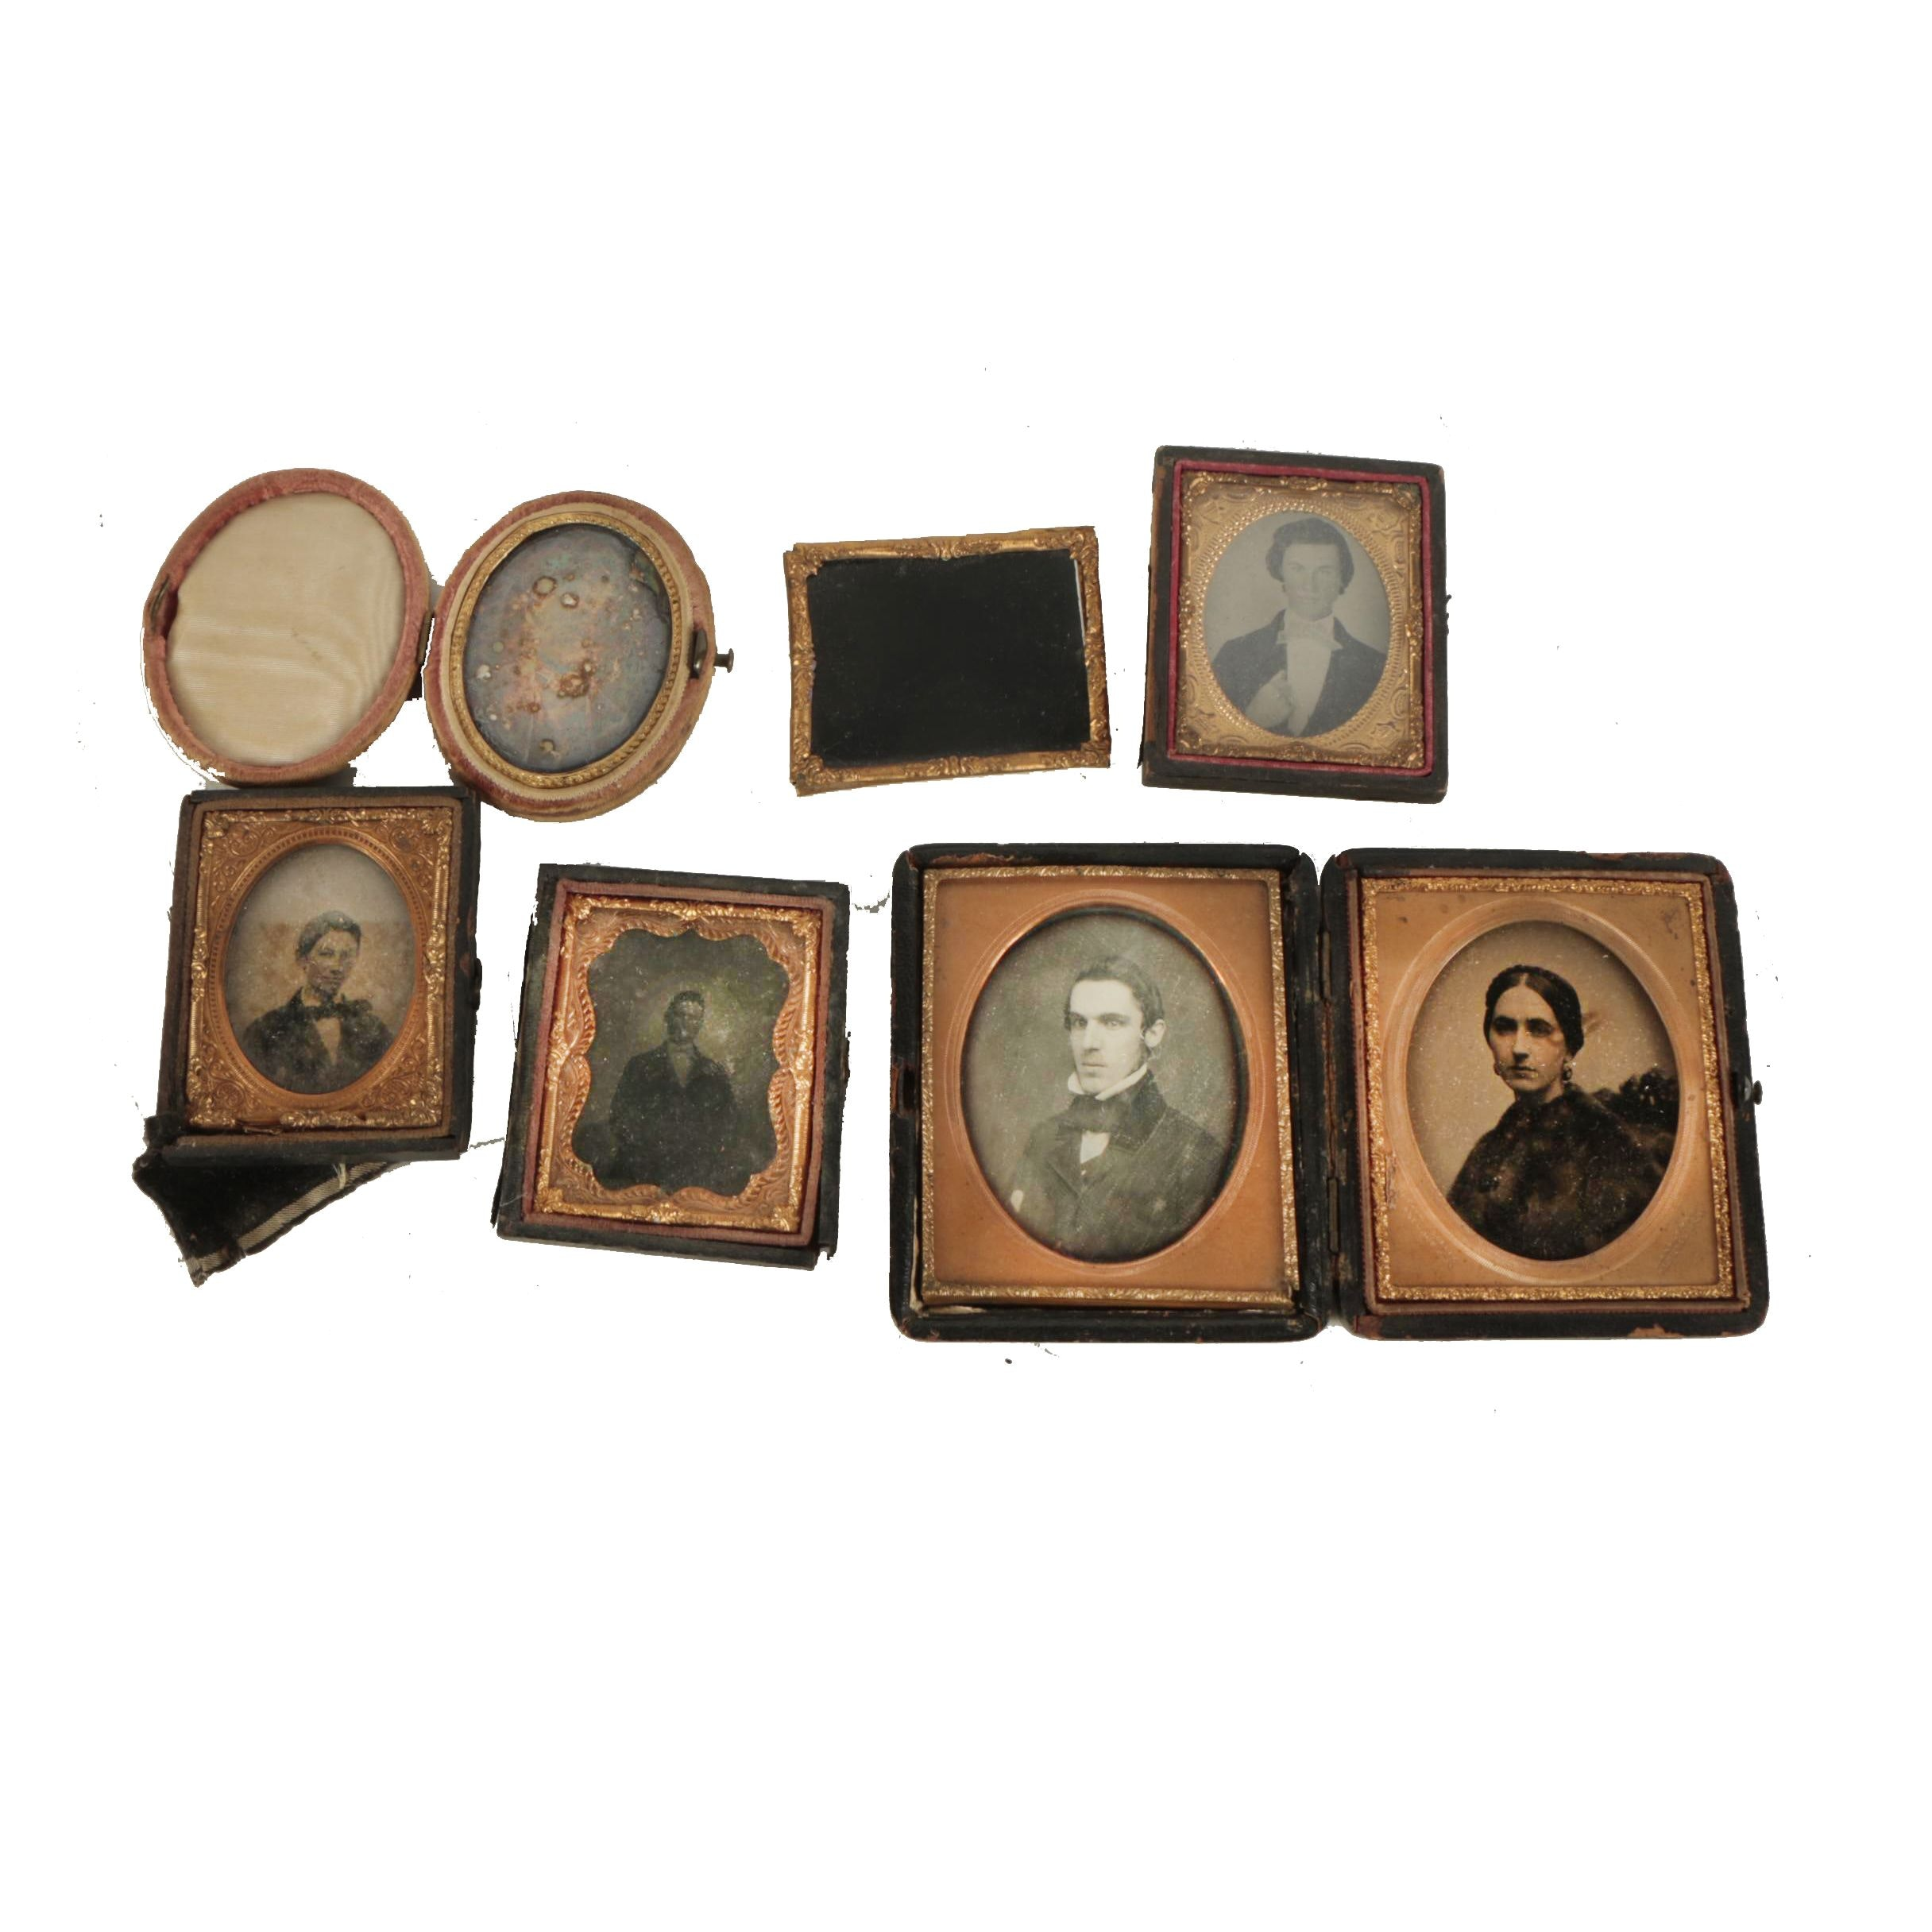 19th-Century Photographs and Union Cases